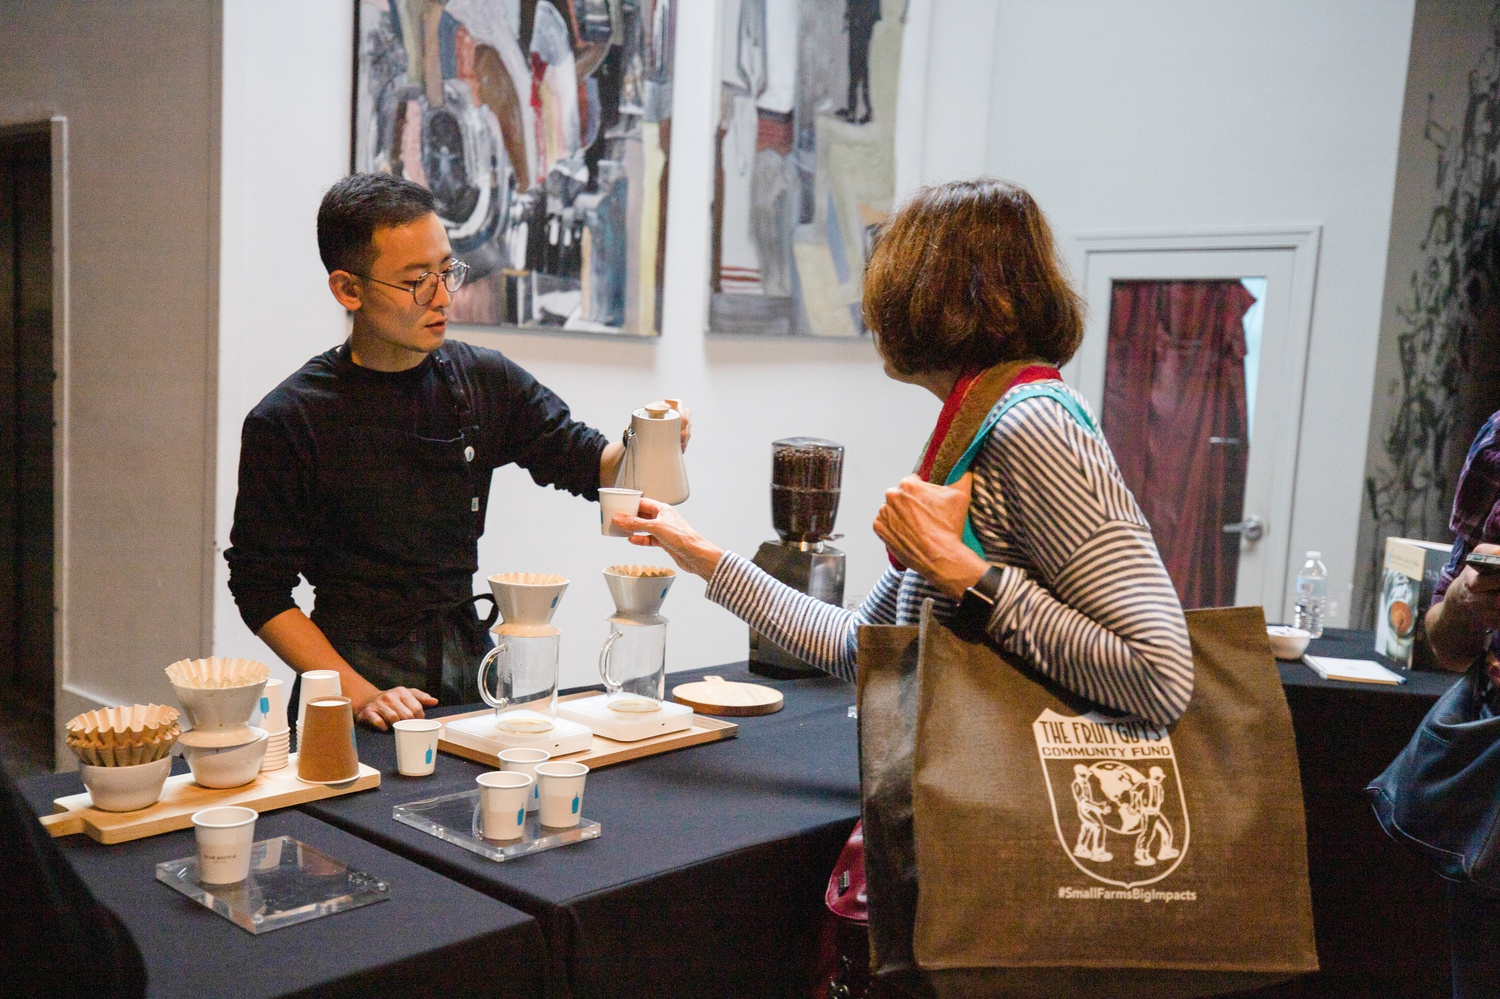 A Blue Bottle Coffee employee serves free samples at the New England Chocolate Festival.